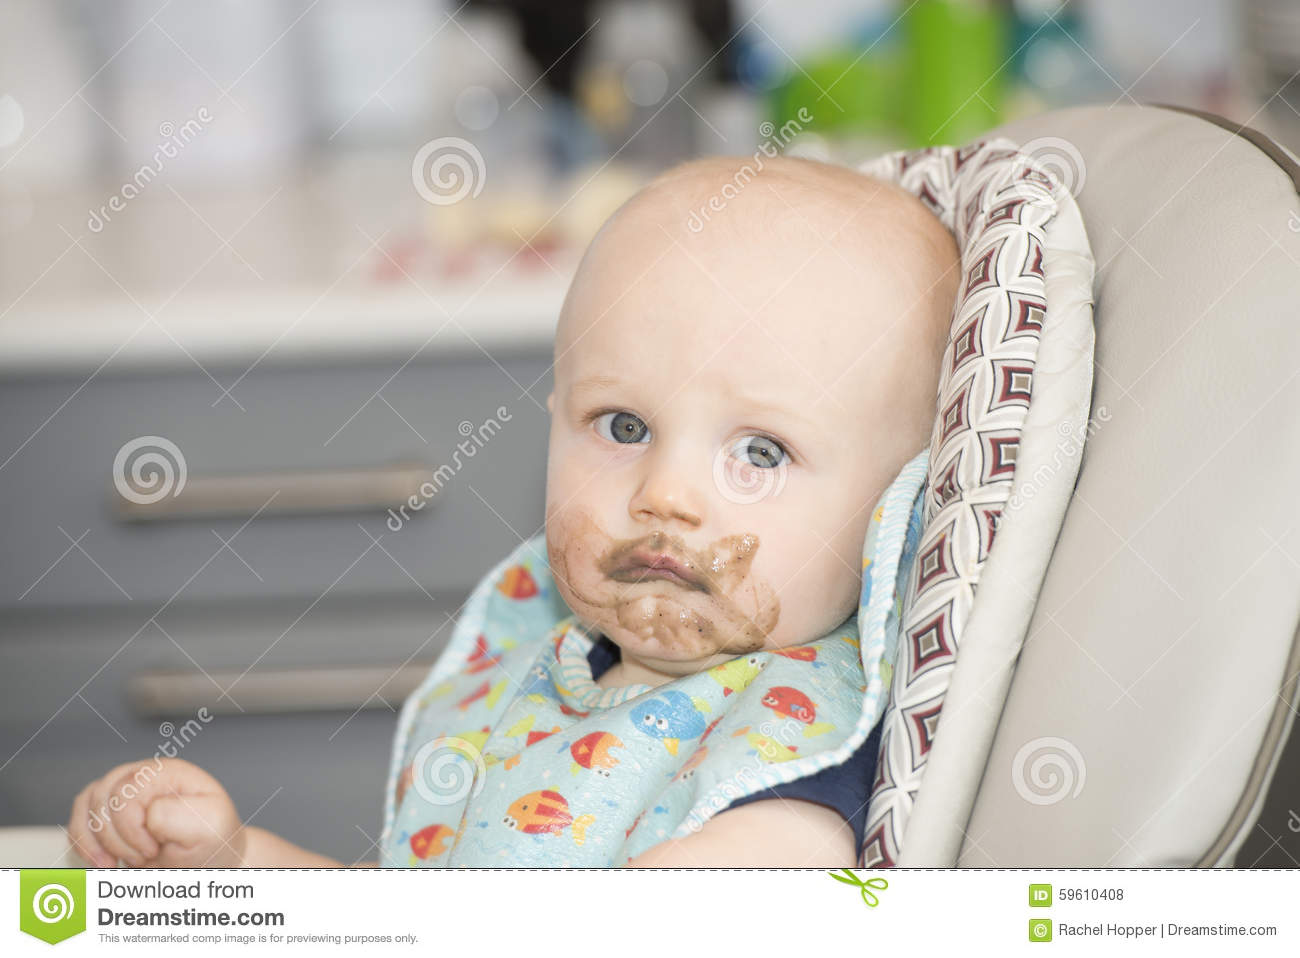 Baby Food Chair Baby Boy With Food On His Face In A High Chair Stock Photo